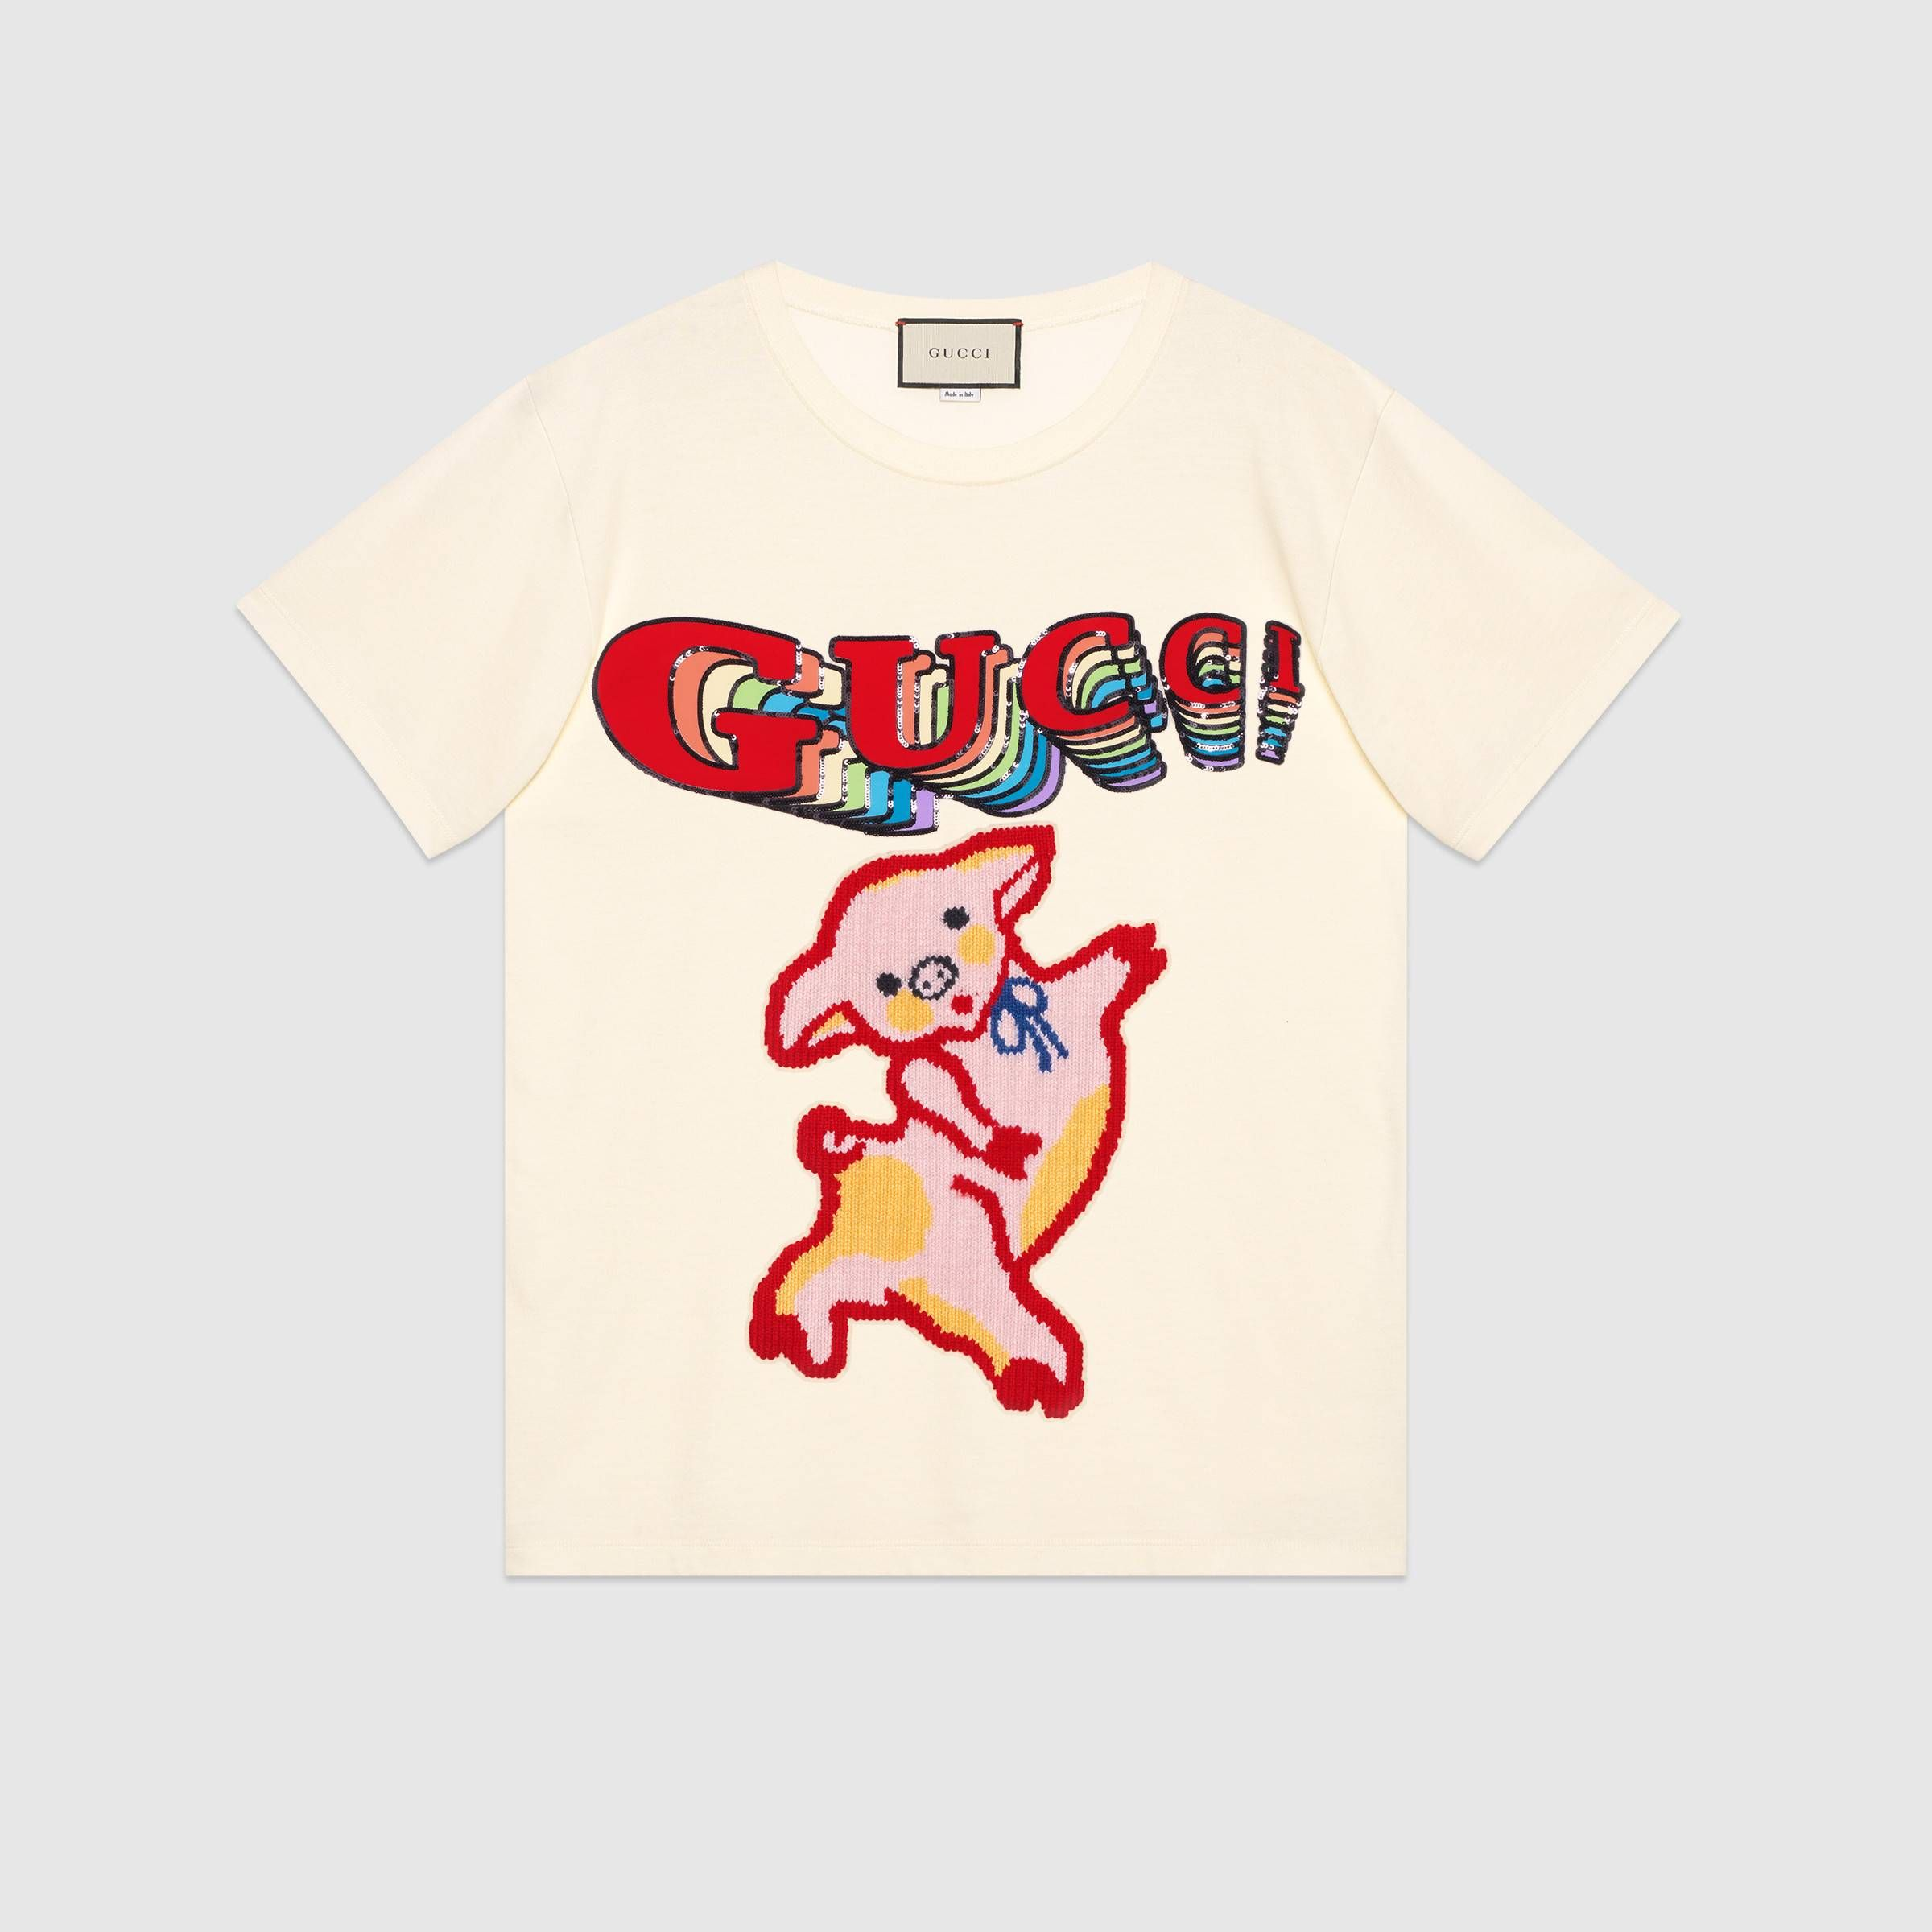 07e0edc54e8 Women s oversize cotton T-shirt with piglet in Off-white cotton jersey